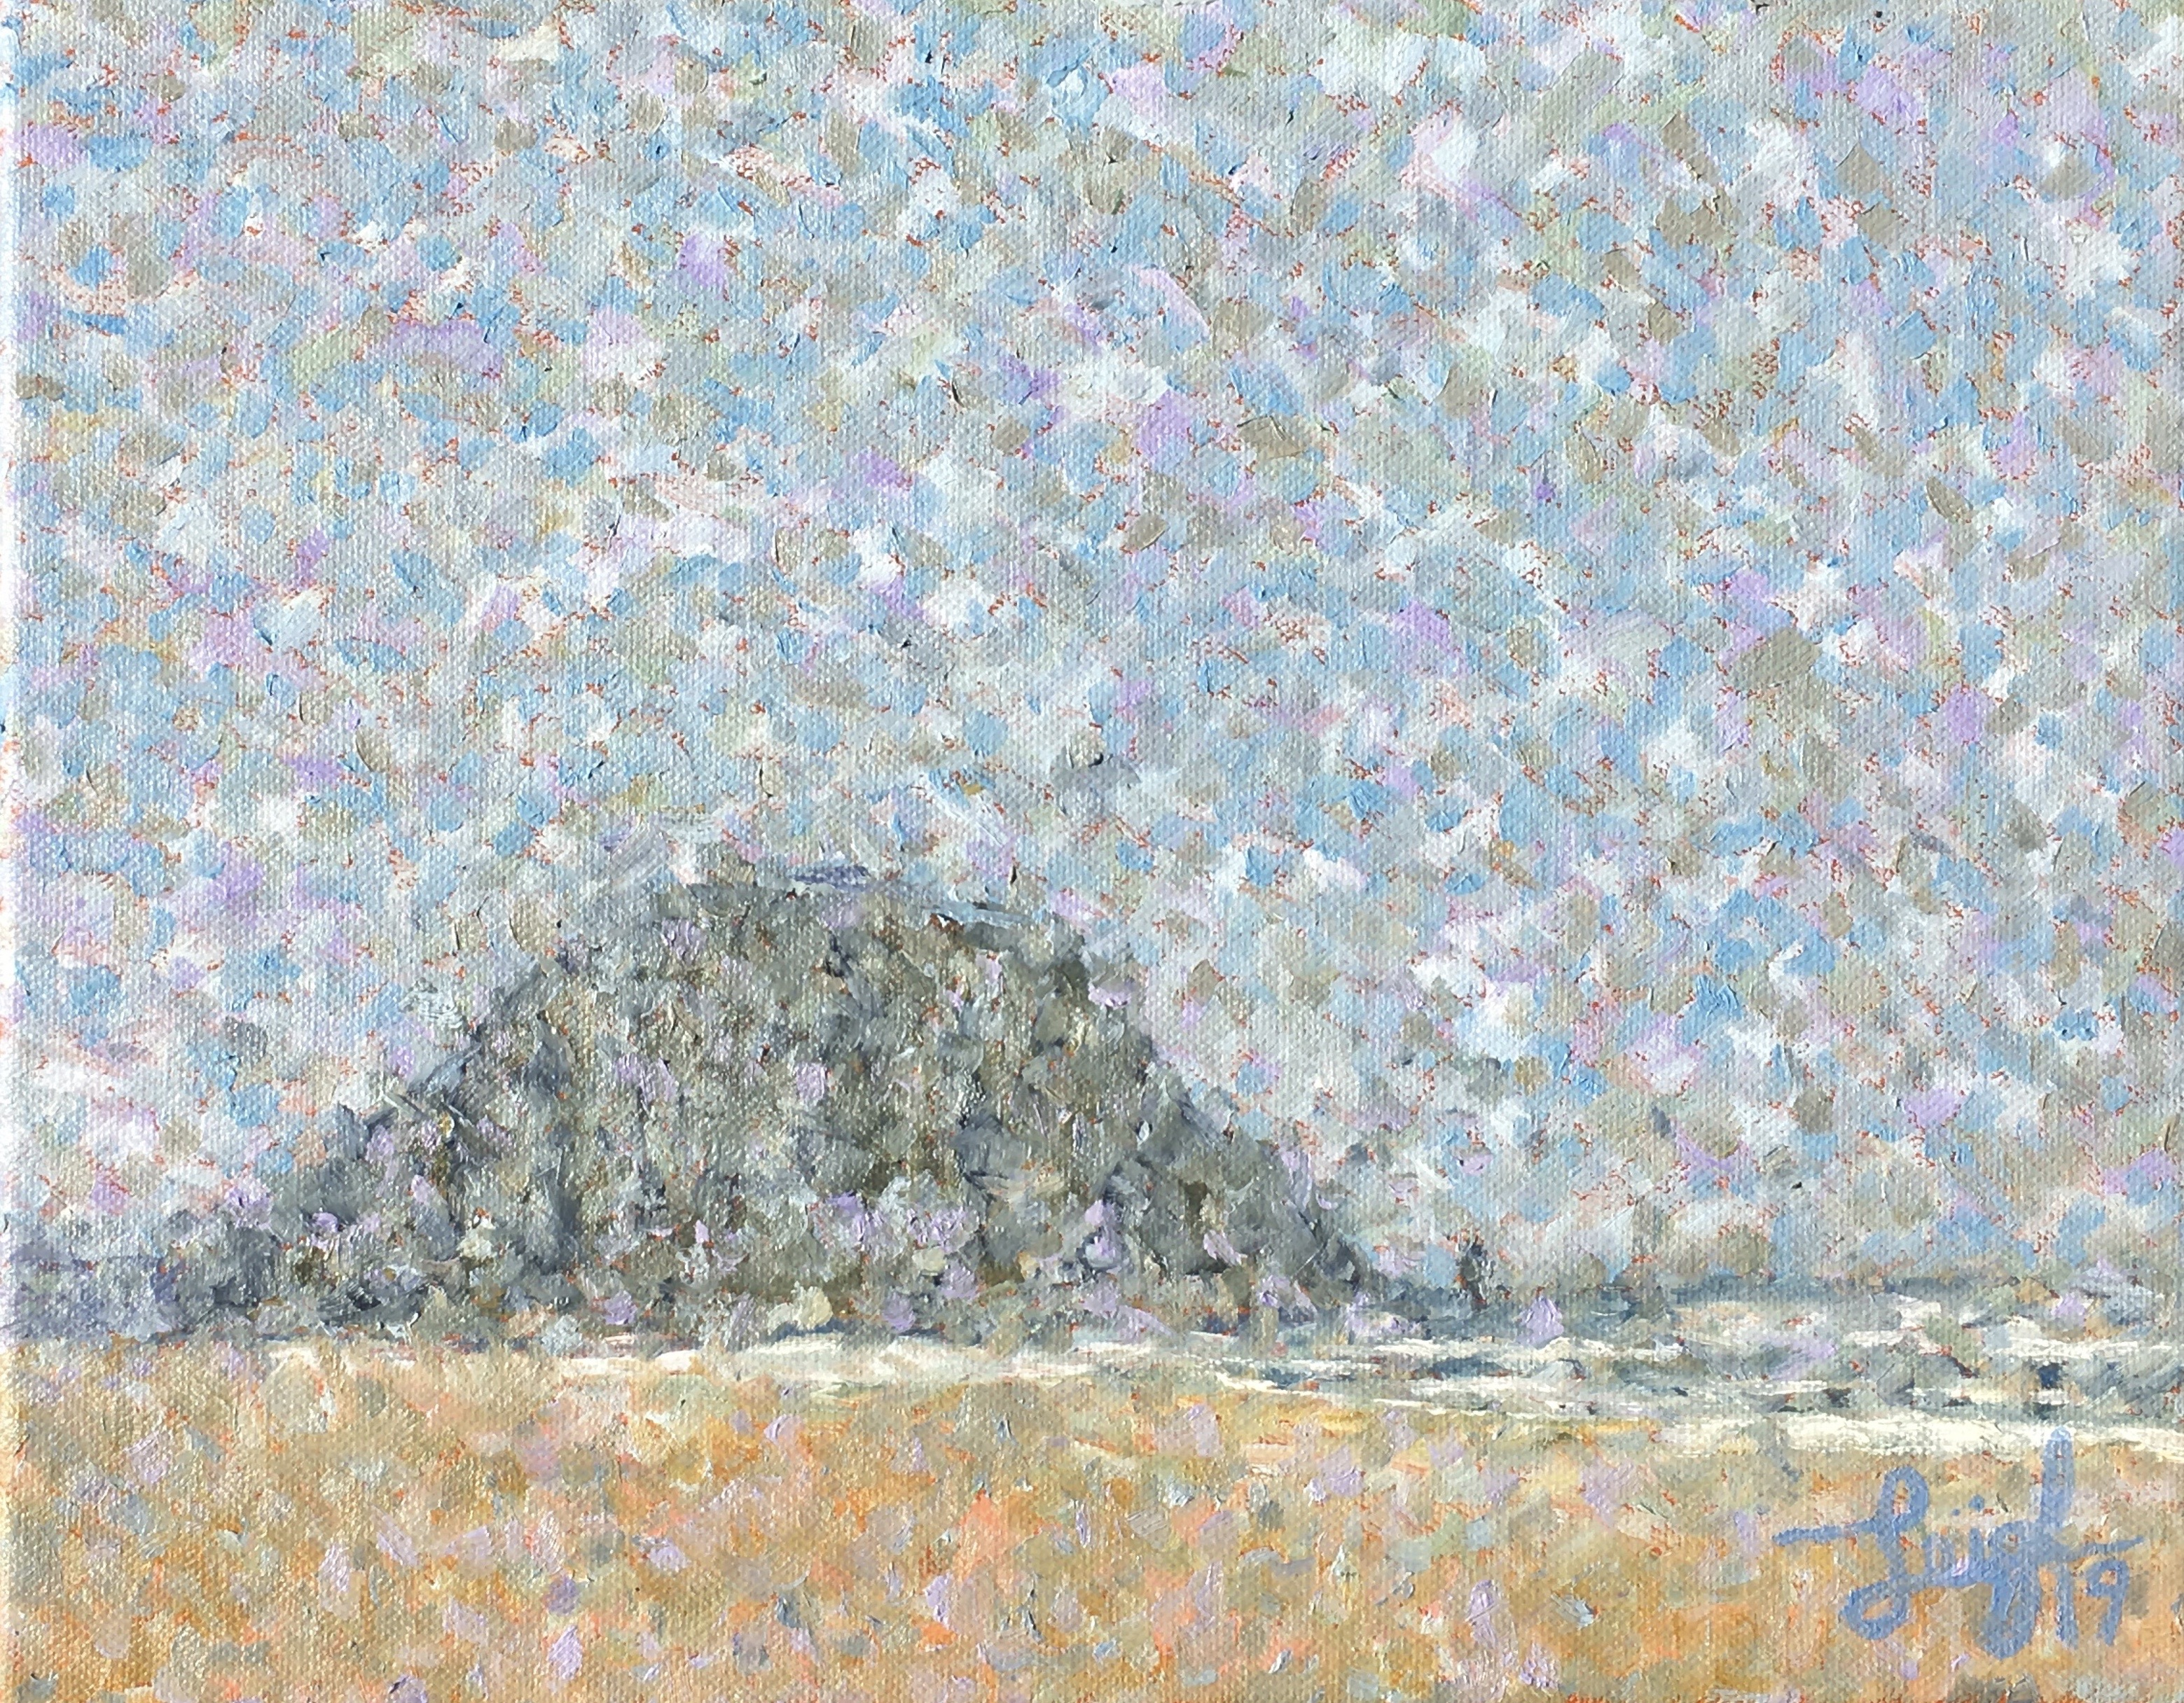 Morro Rock Series #2 (Fog Effect)  ~  Martha Levine, Camp Hill, PA 2019  •  14 x 11